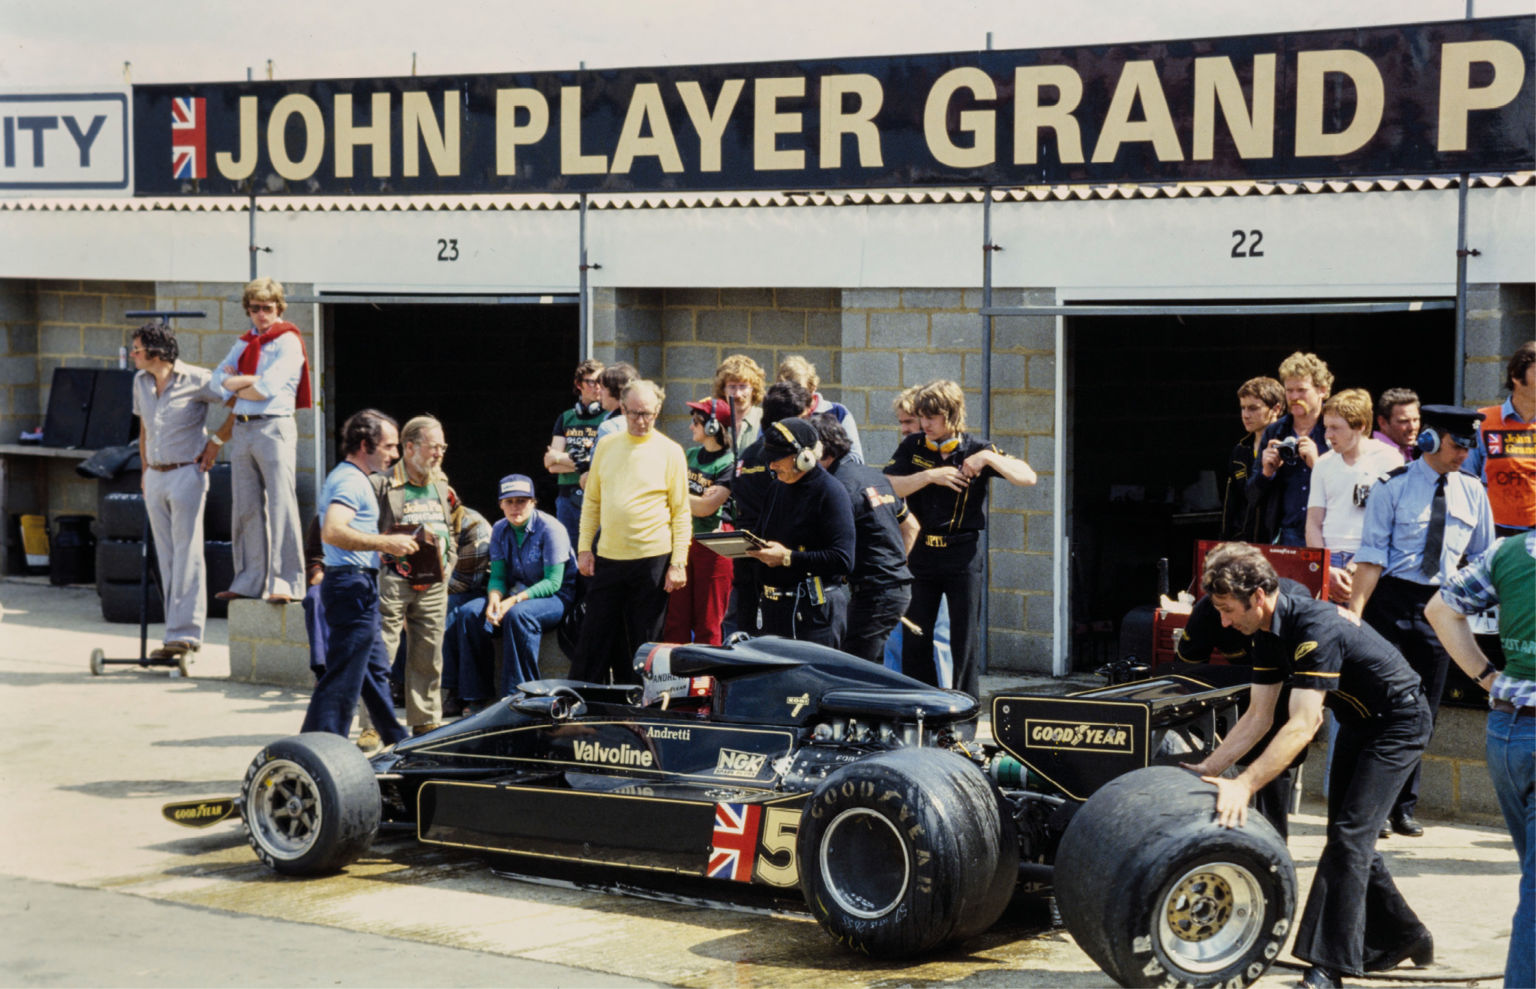 Silverstone 1977: Andretti changes tyres during practice; note Motor Sport's Jenks watching